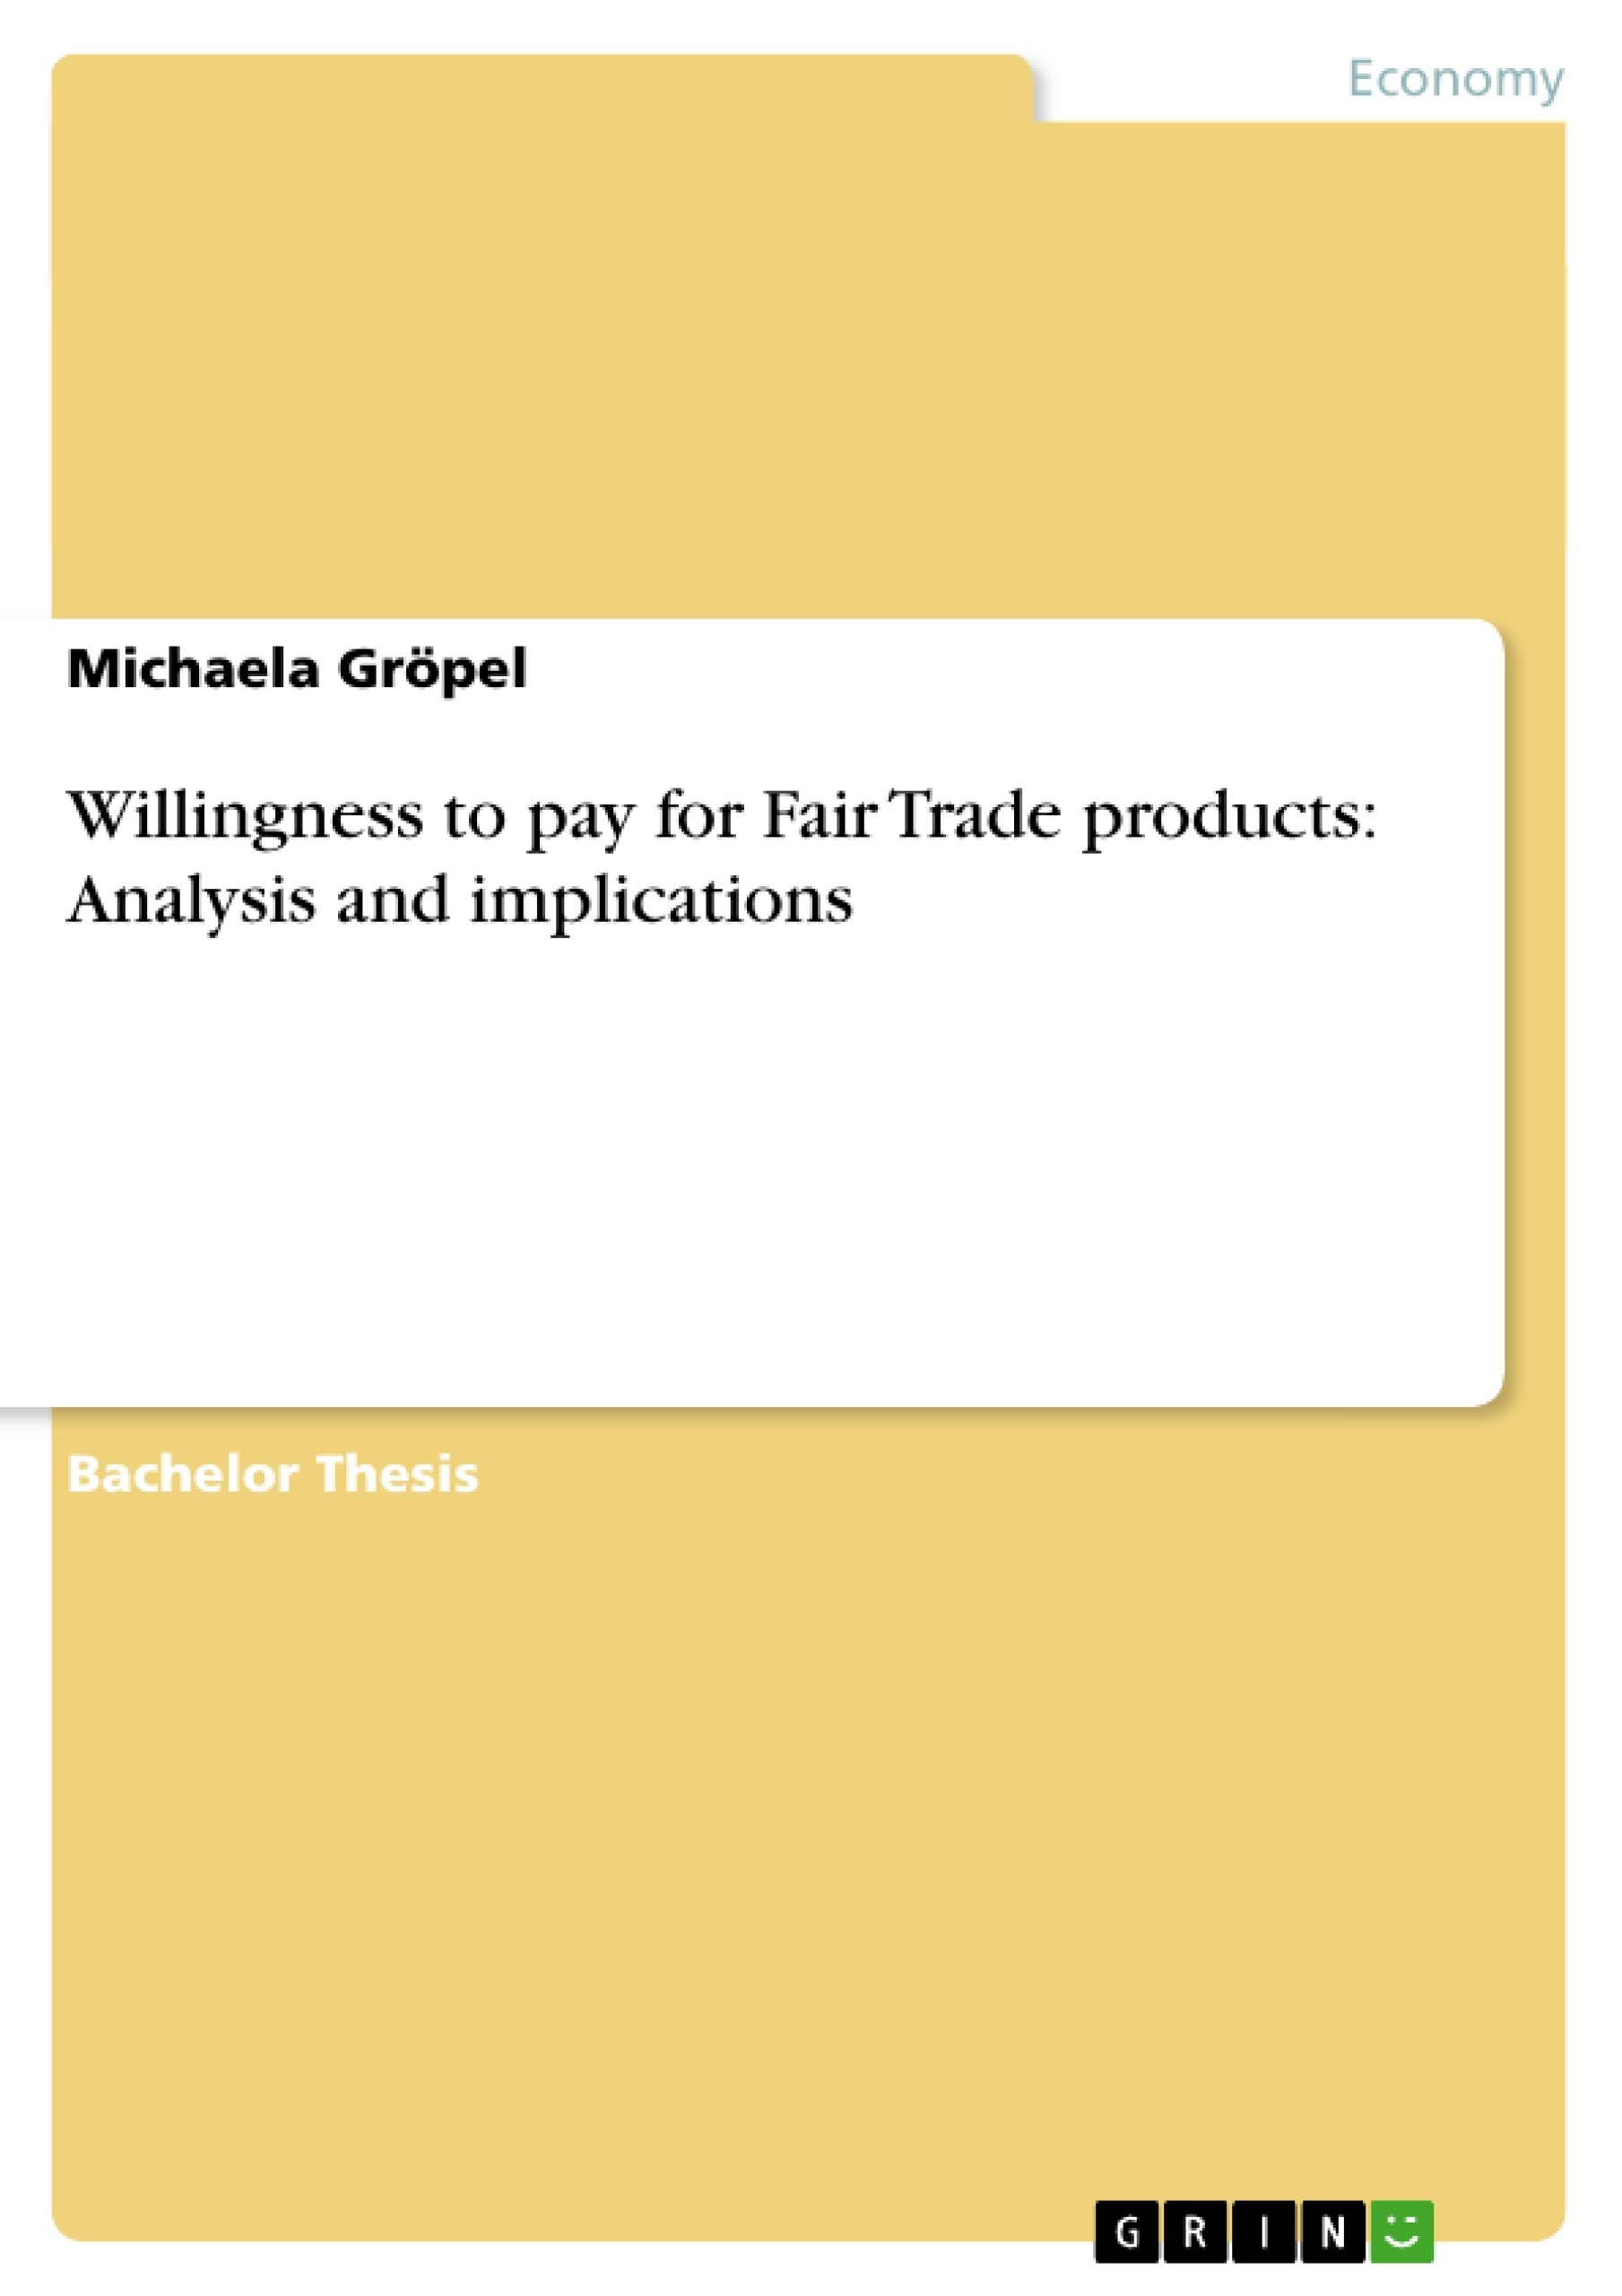 Title: Willingness to pay for Fair Trade products: Analysis and implications